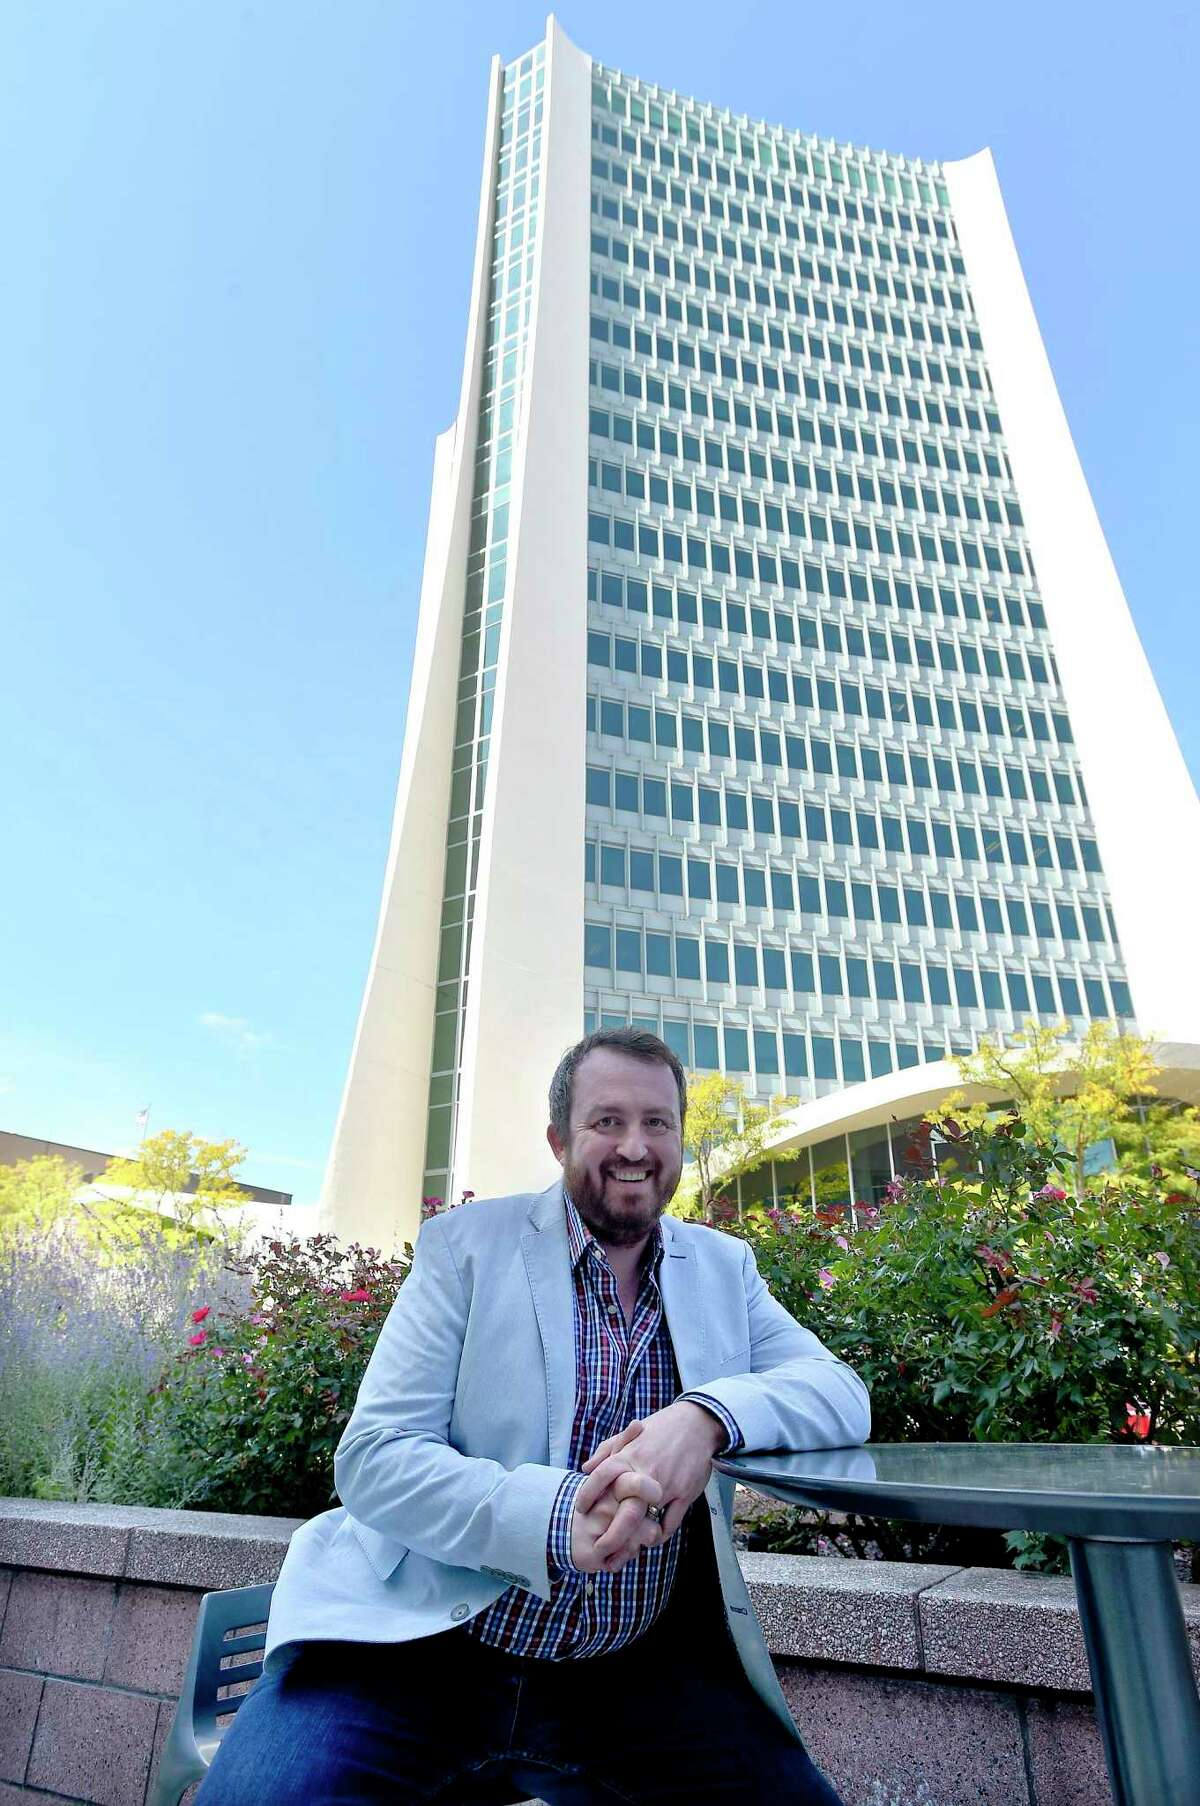 Jonathan Winkel, founder of Stamford Innovation Week, has been named executive director of the nonprofit Stamford Partnership.